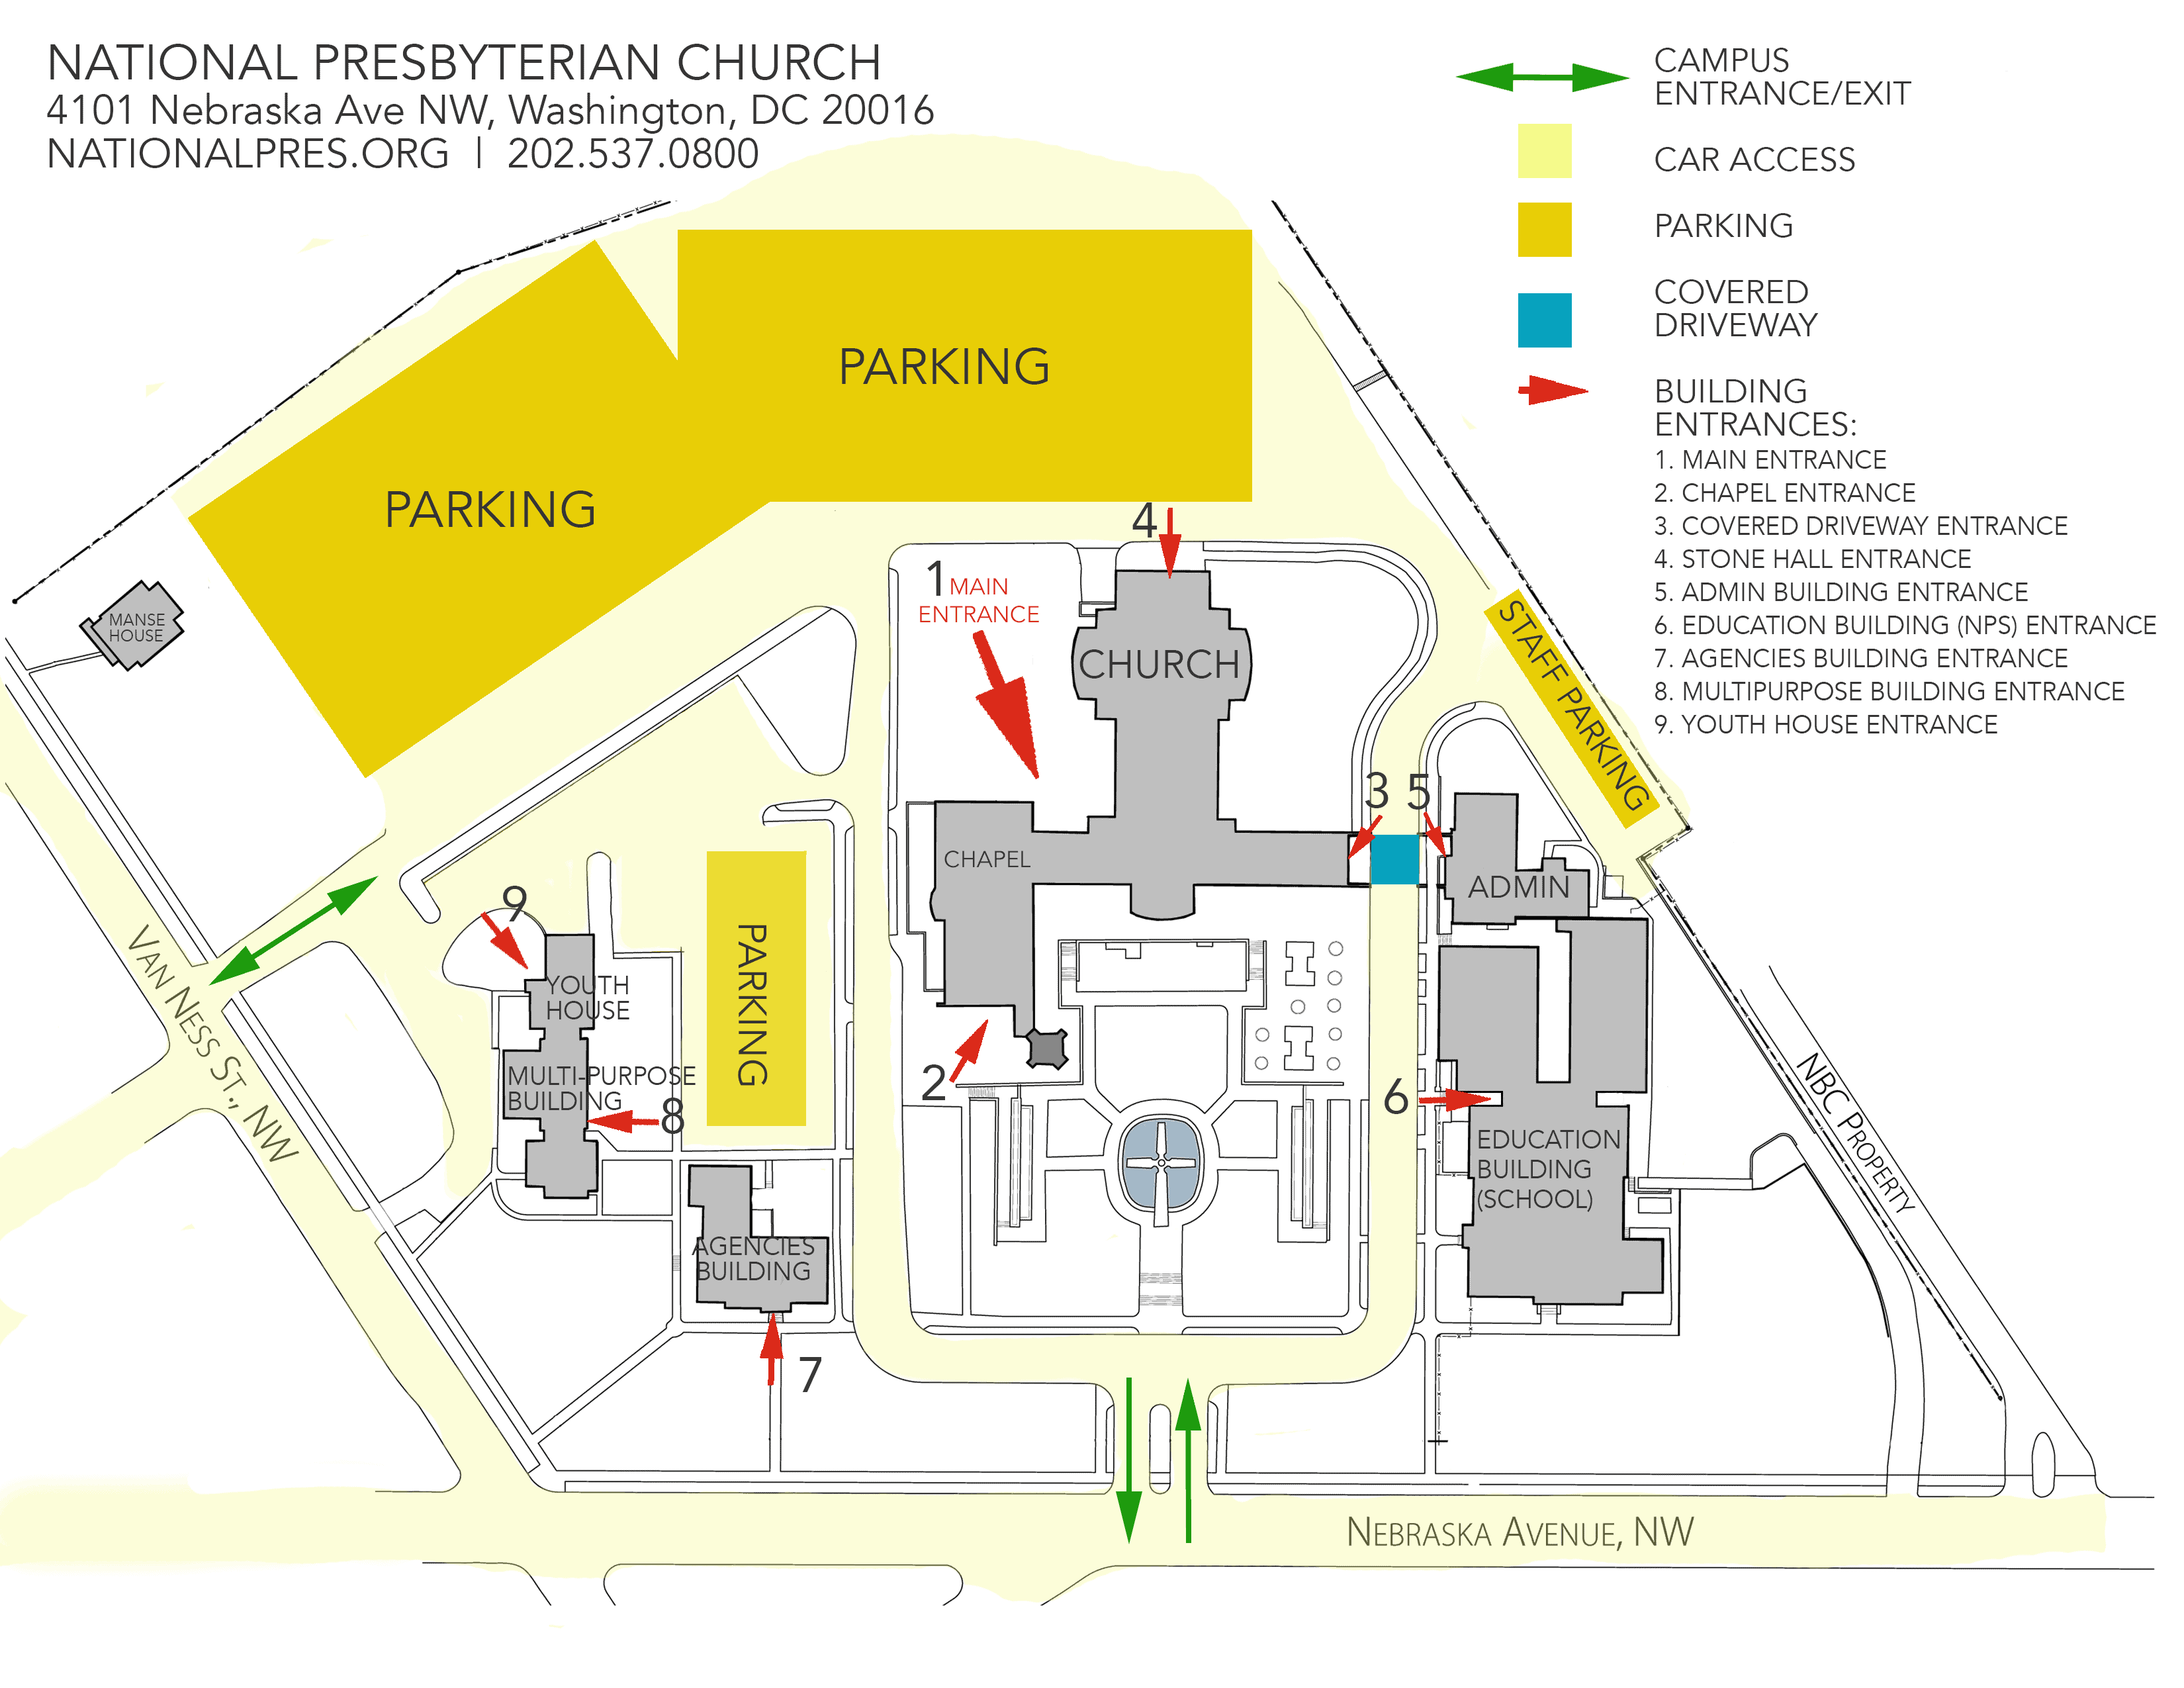 campus map for website-NUMBERED ENTRANCES